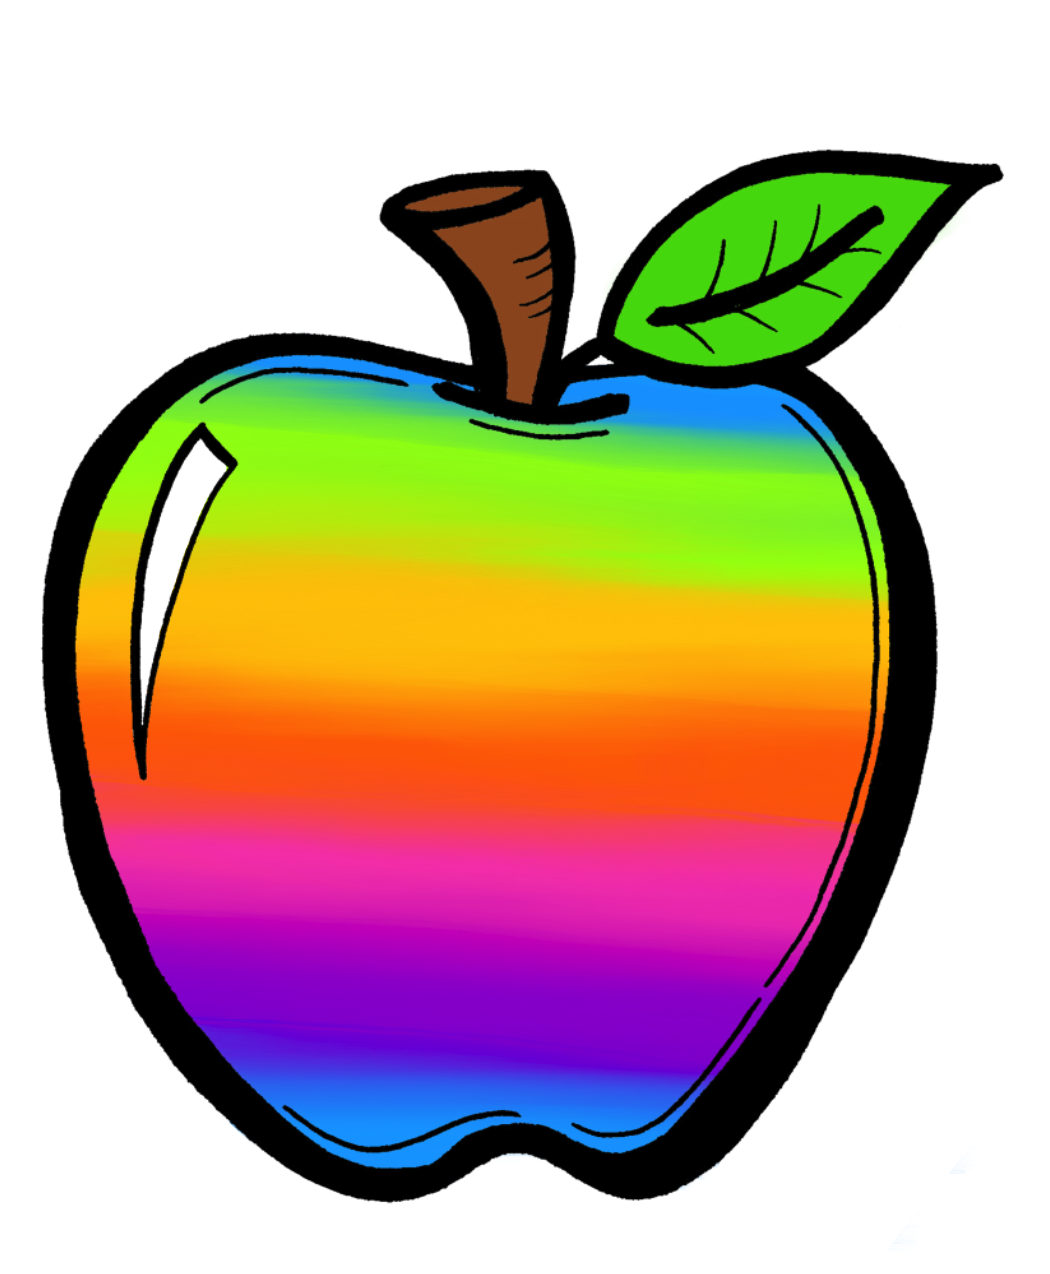 Taffy apple clipart png download Teacher Apple Clipart - Free Clip Art - Clipart Bay png download